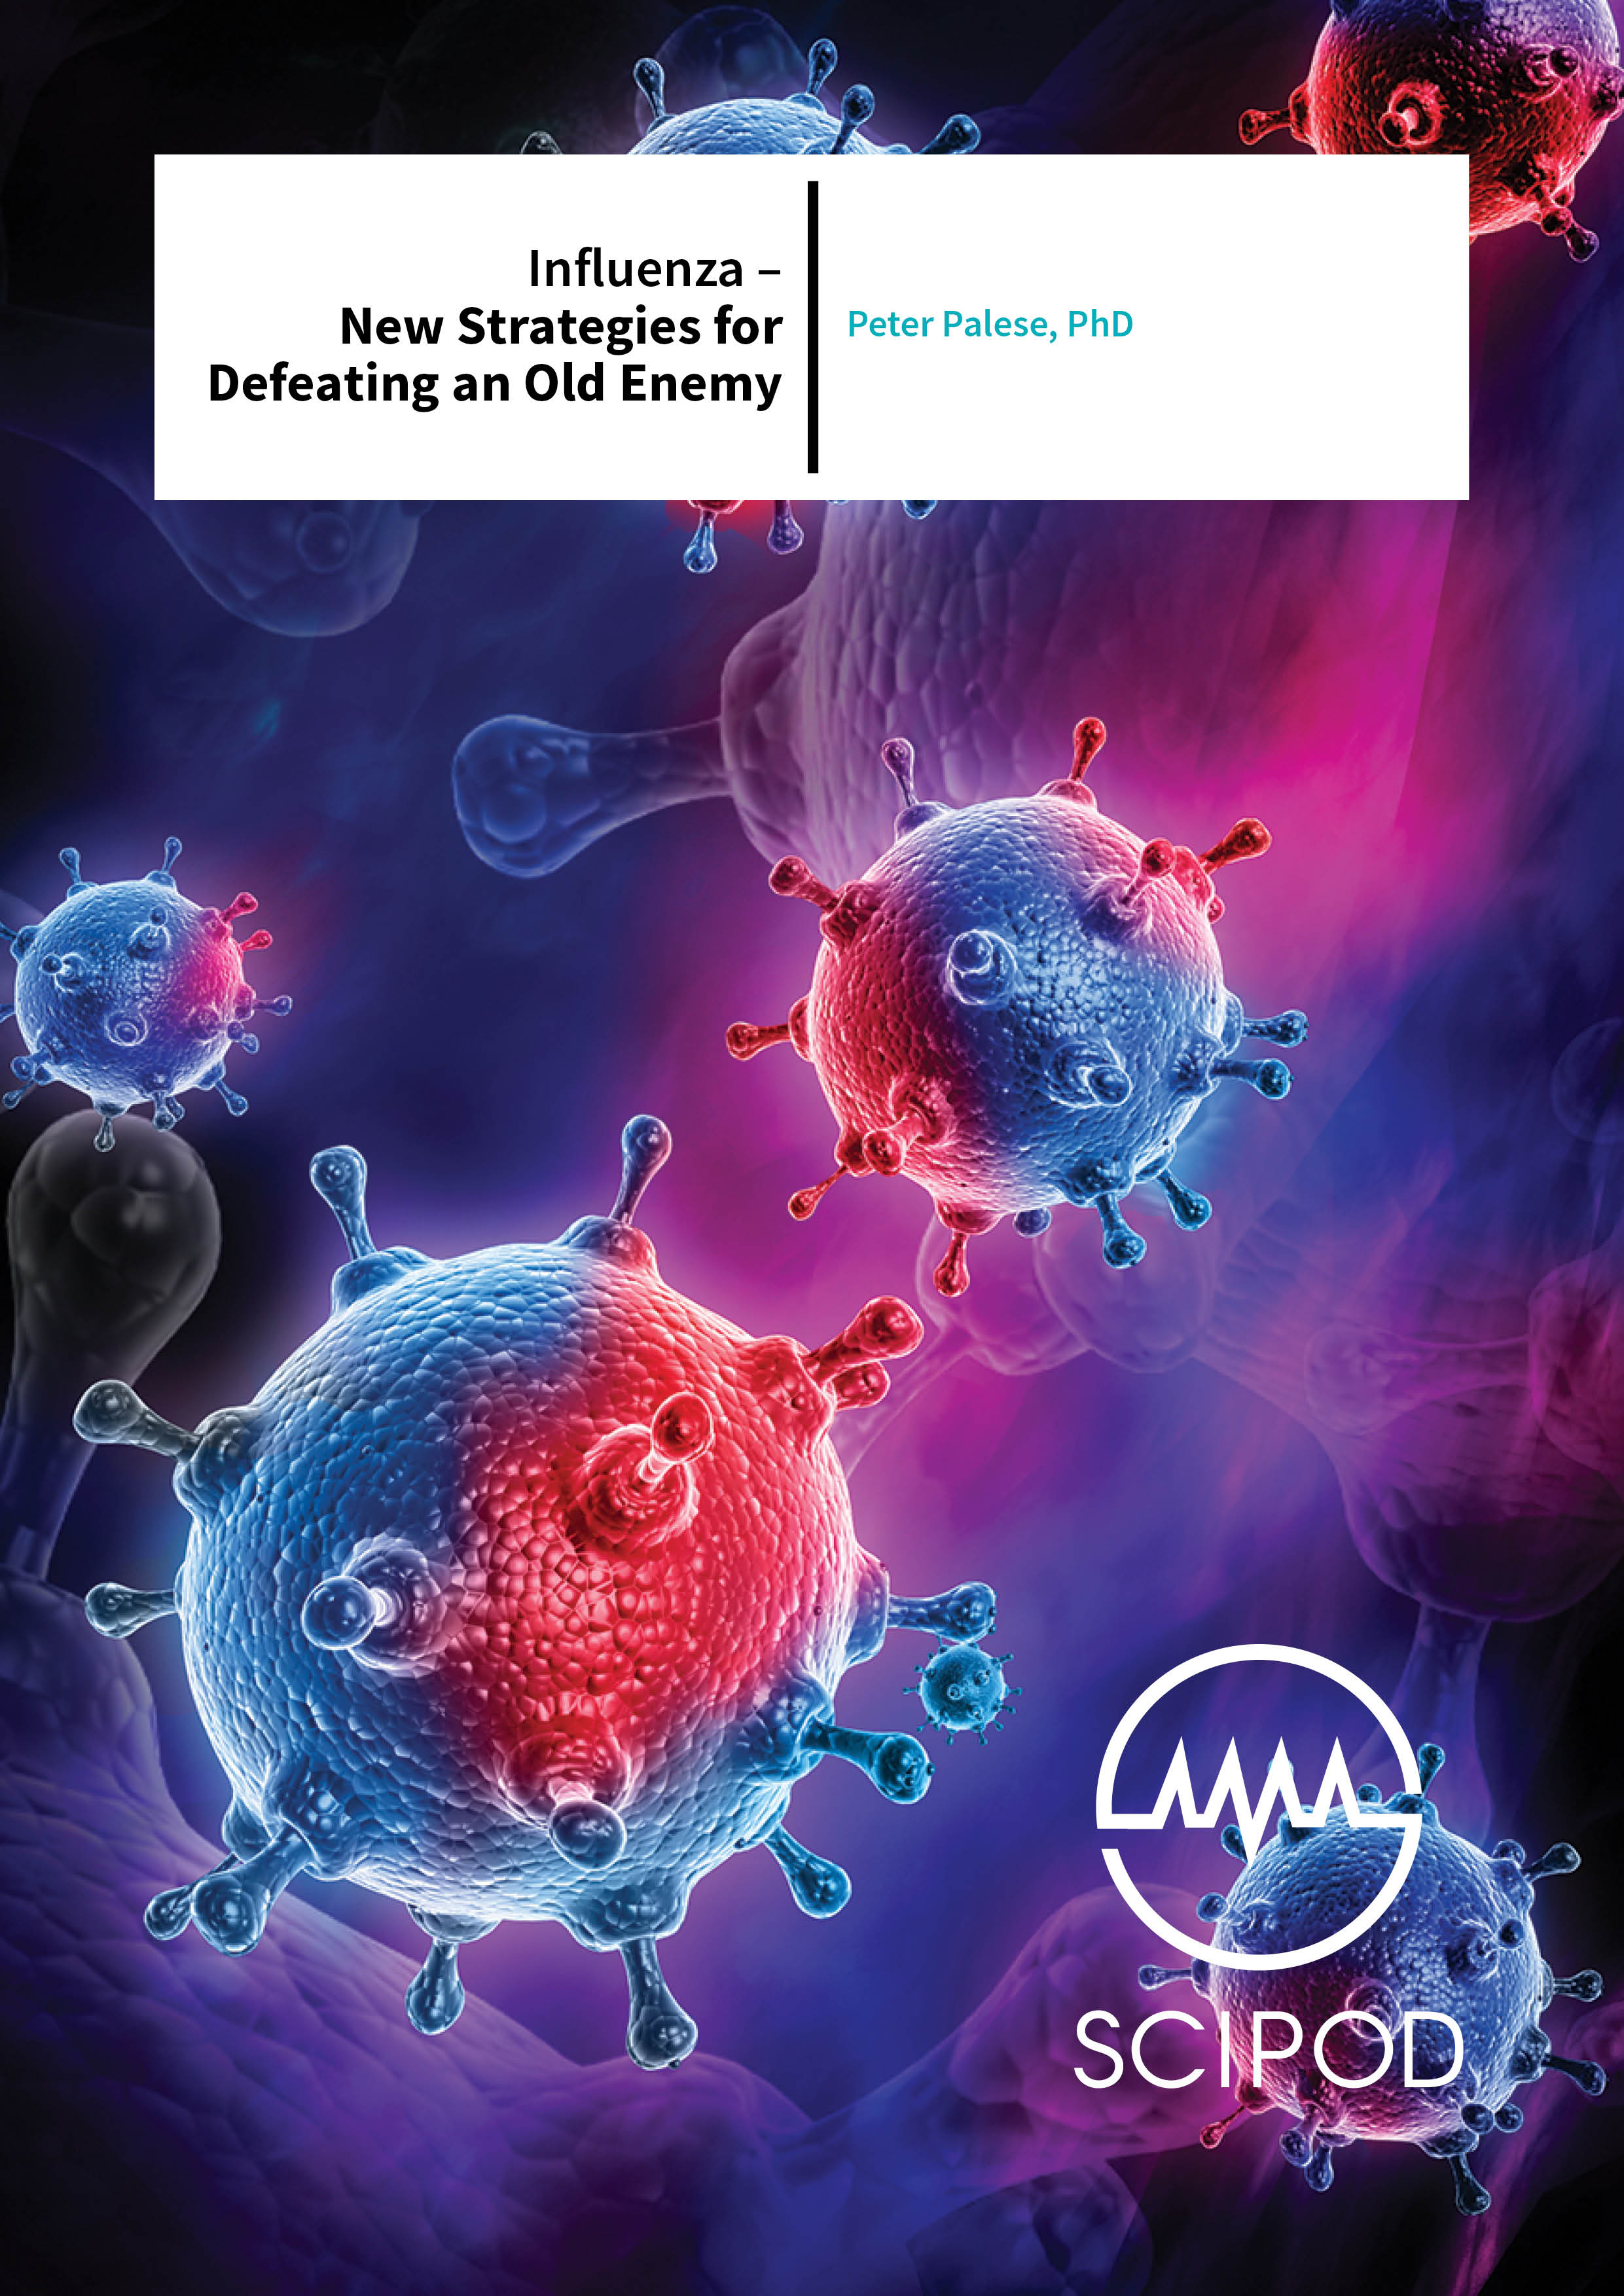 Influenza – New Strategies for Defeating an Old Enemy – Peter Palese, Icahn School of Medicine at Mount Sinai